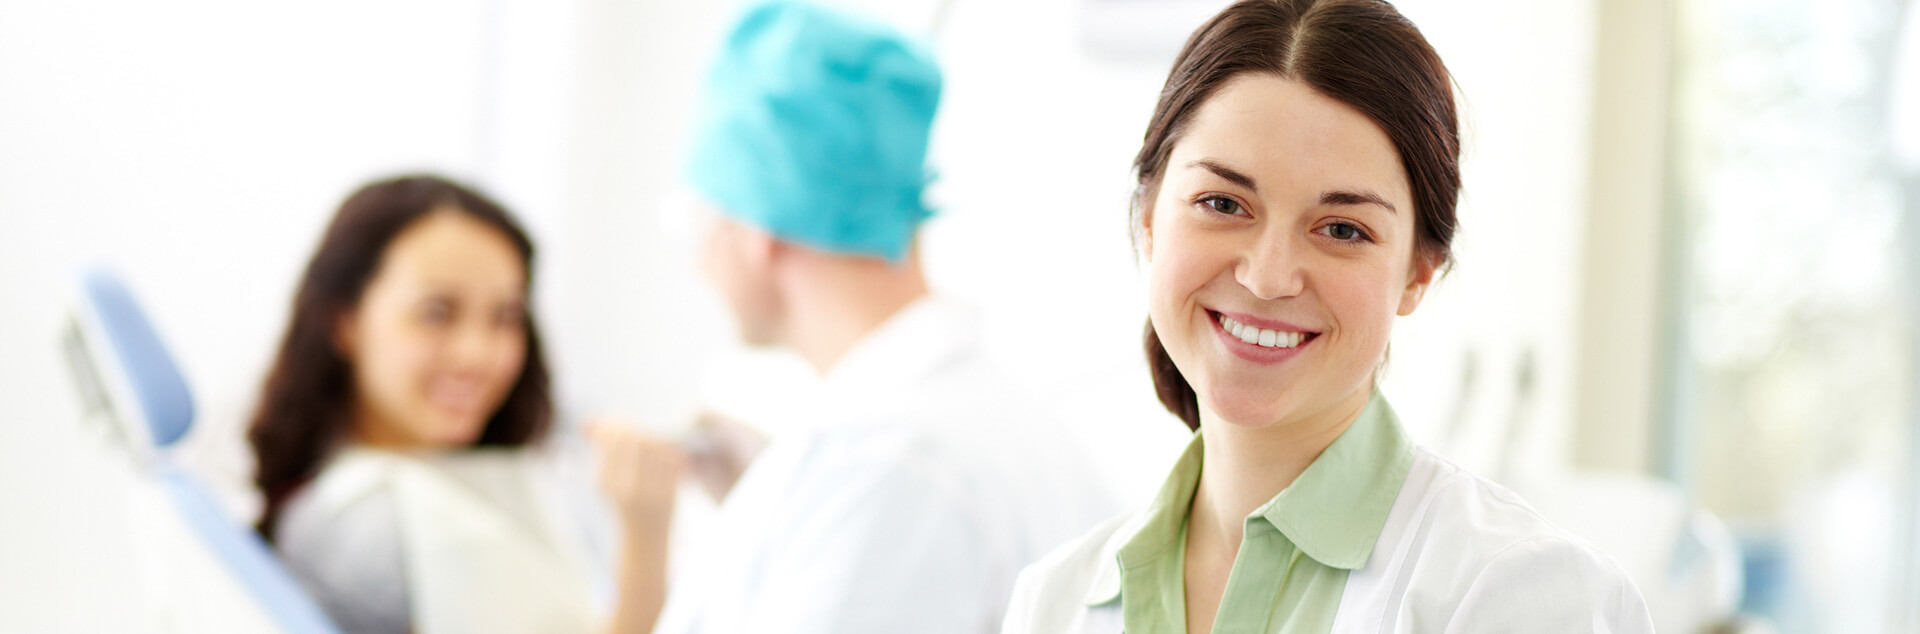 Dental assistant smiling looking a the camera